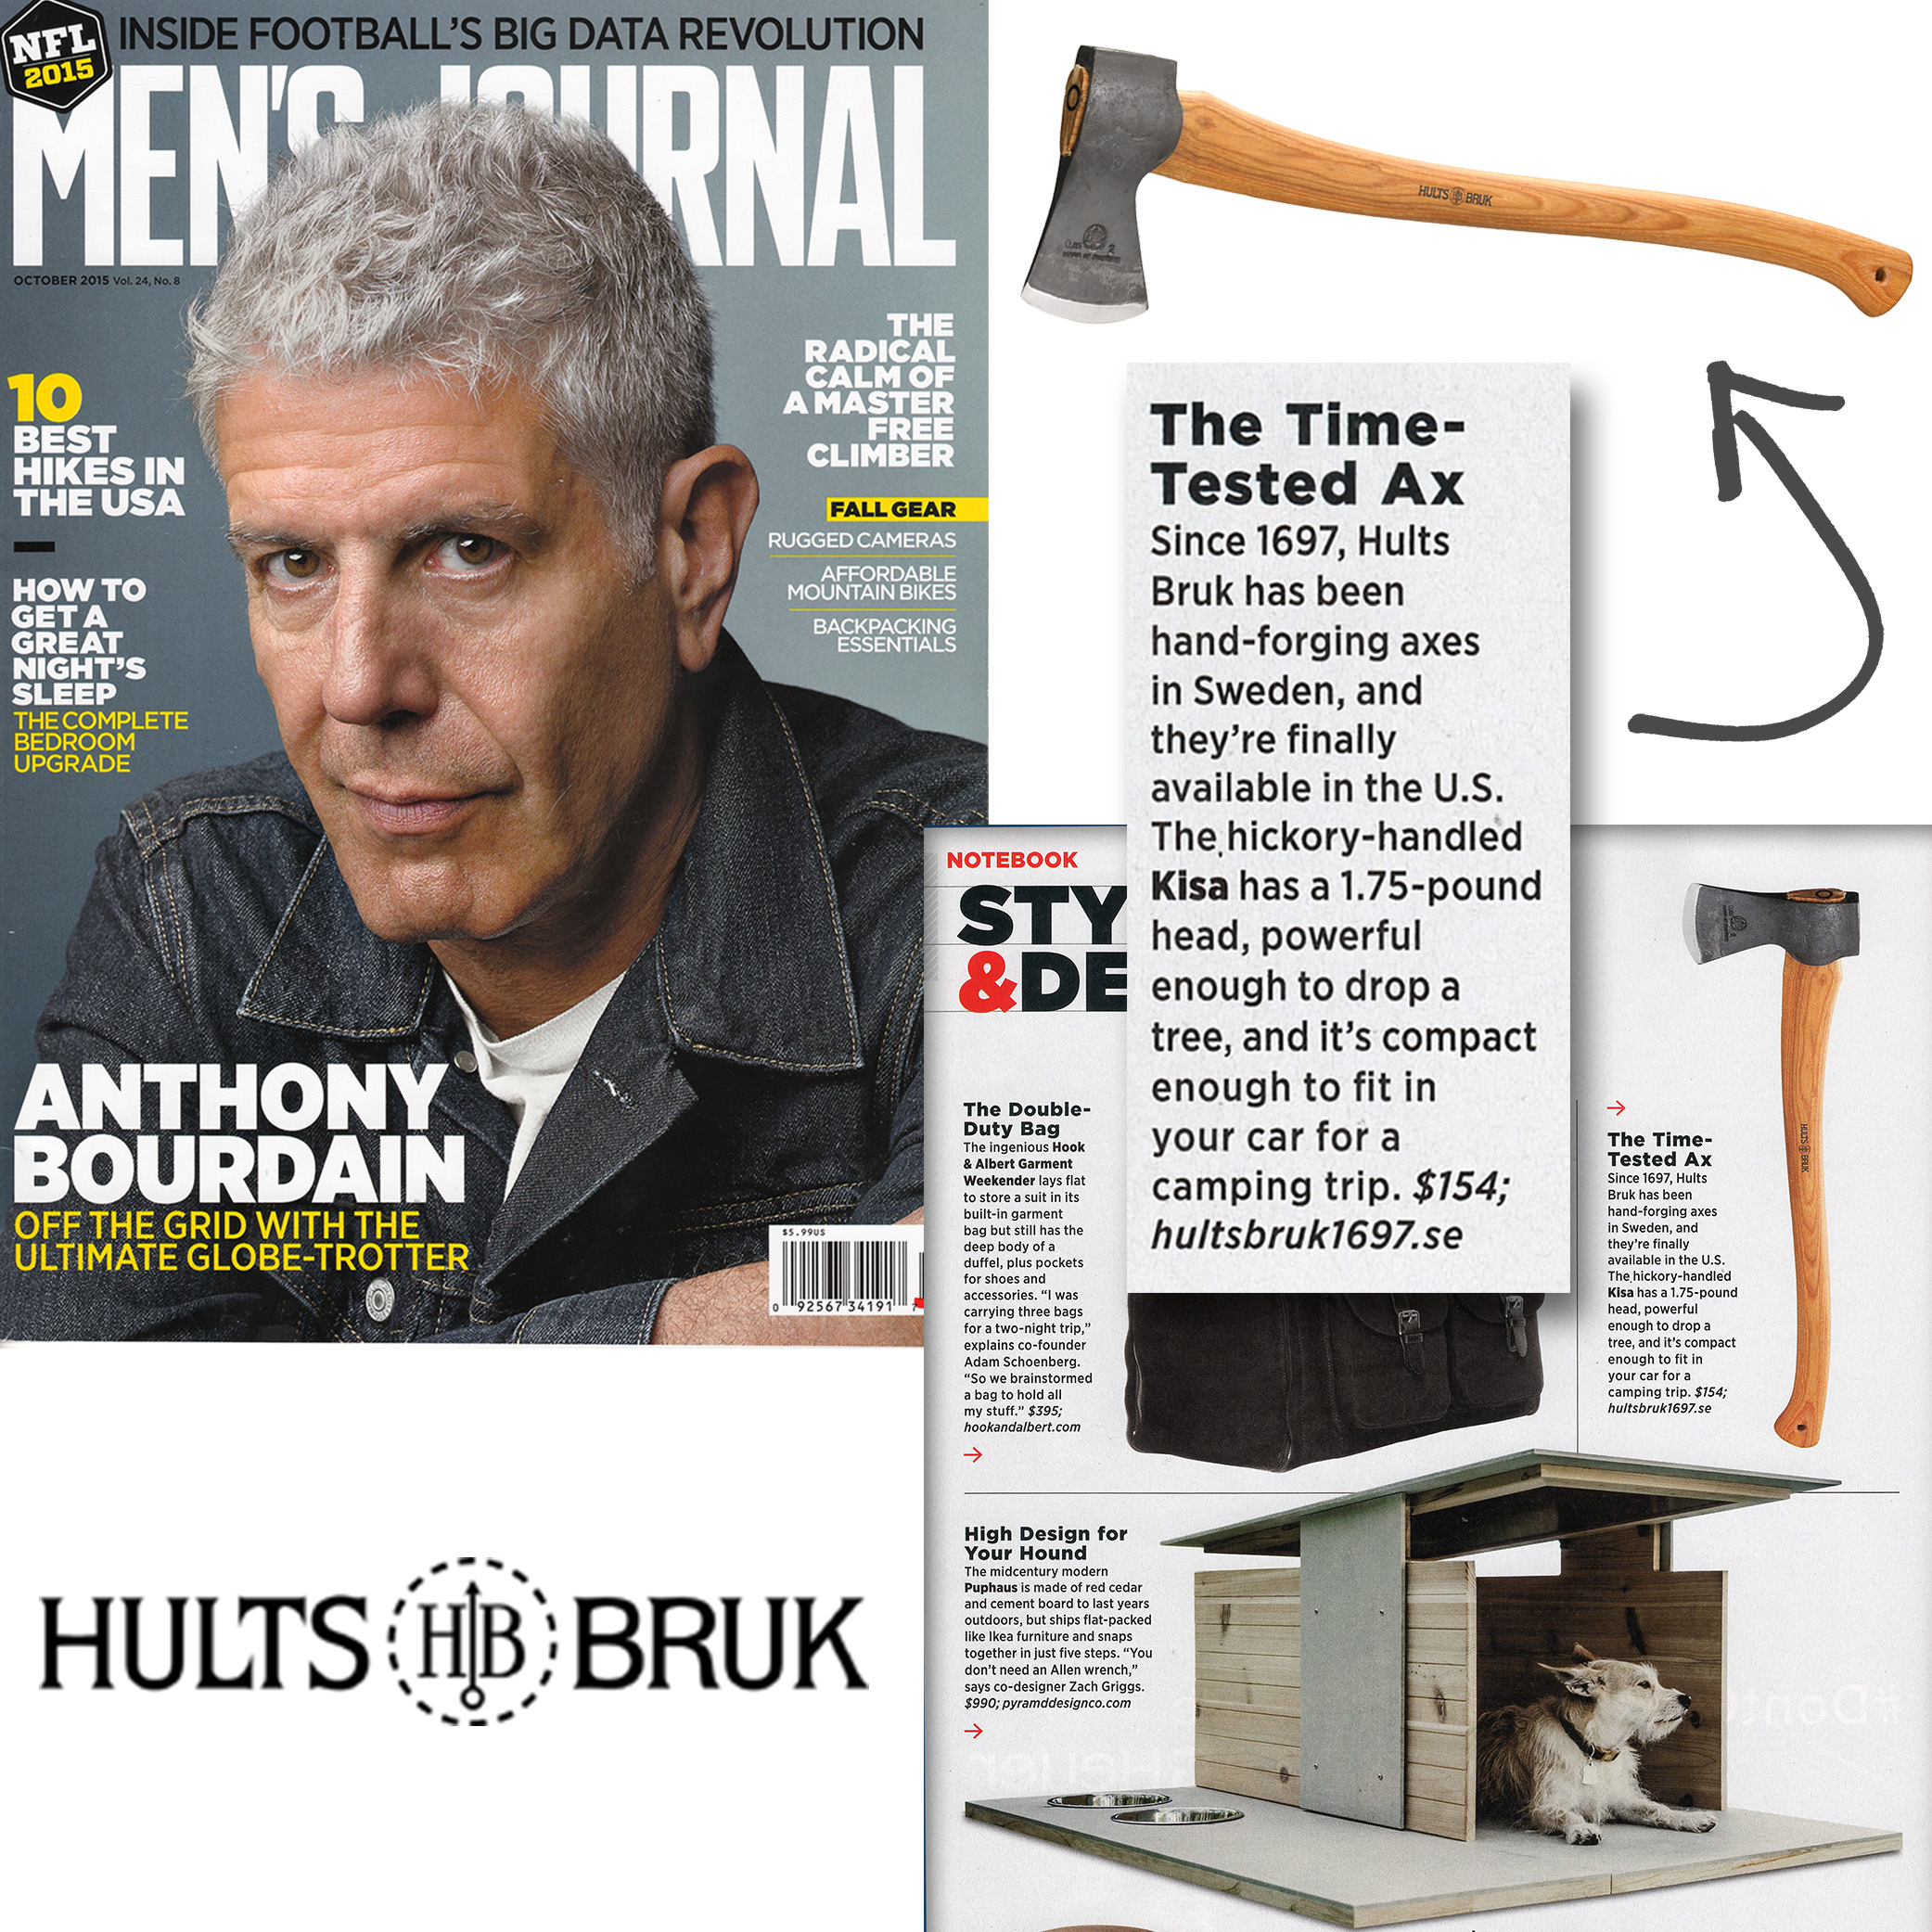 Men's Journal Highlights the Hults Bruk Kisa